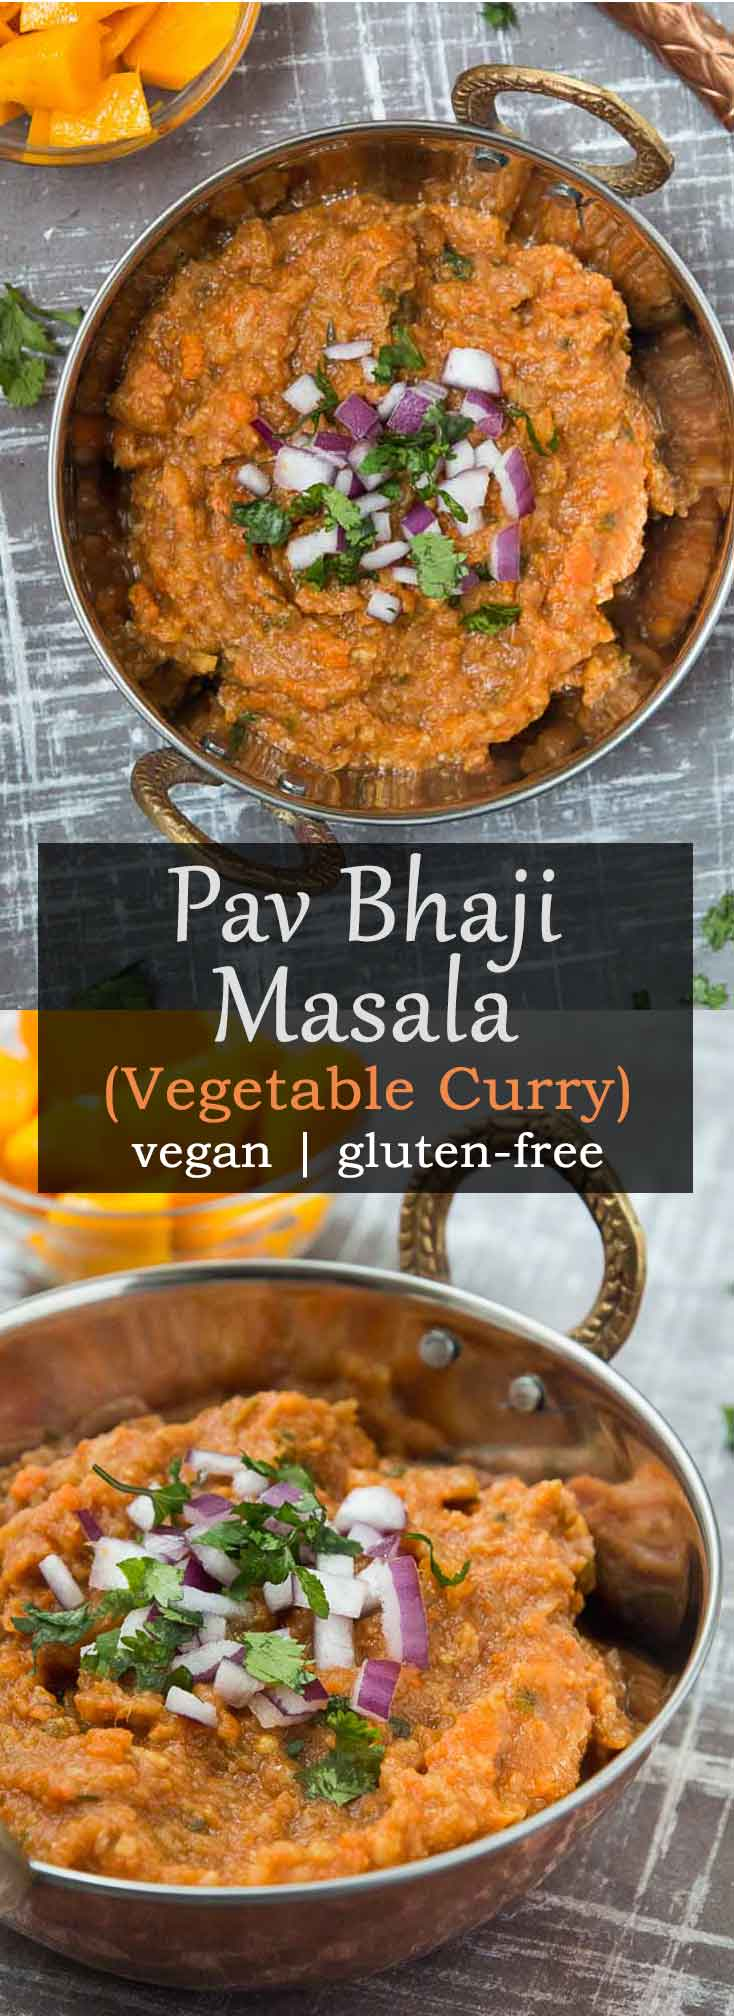 Pav bhaji Masala Recipe (Vegetable Curry) #vegan #glutenfree #healthy | Vegetarian Gastronomy | www.VegetarianGastronomy.com